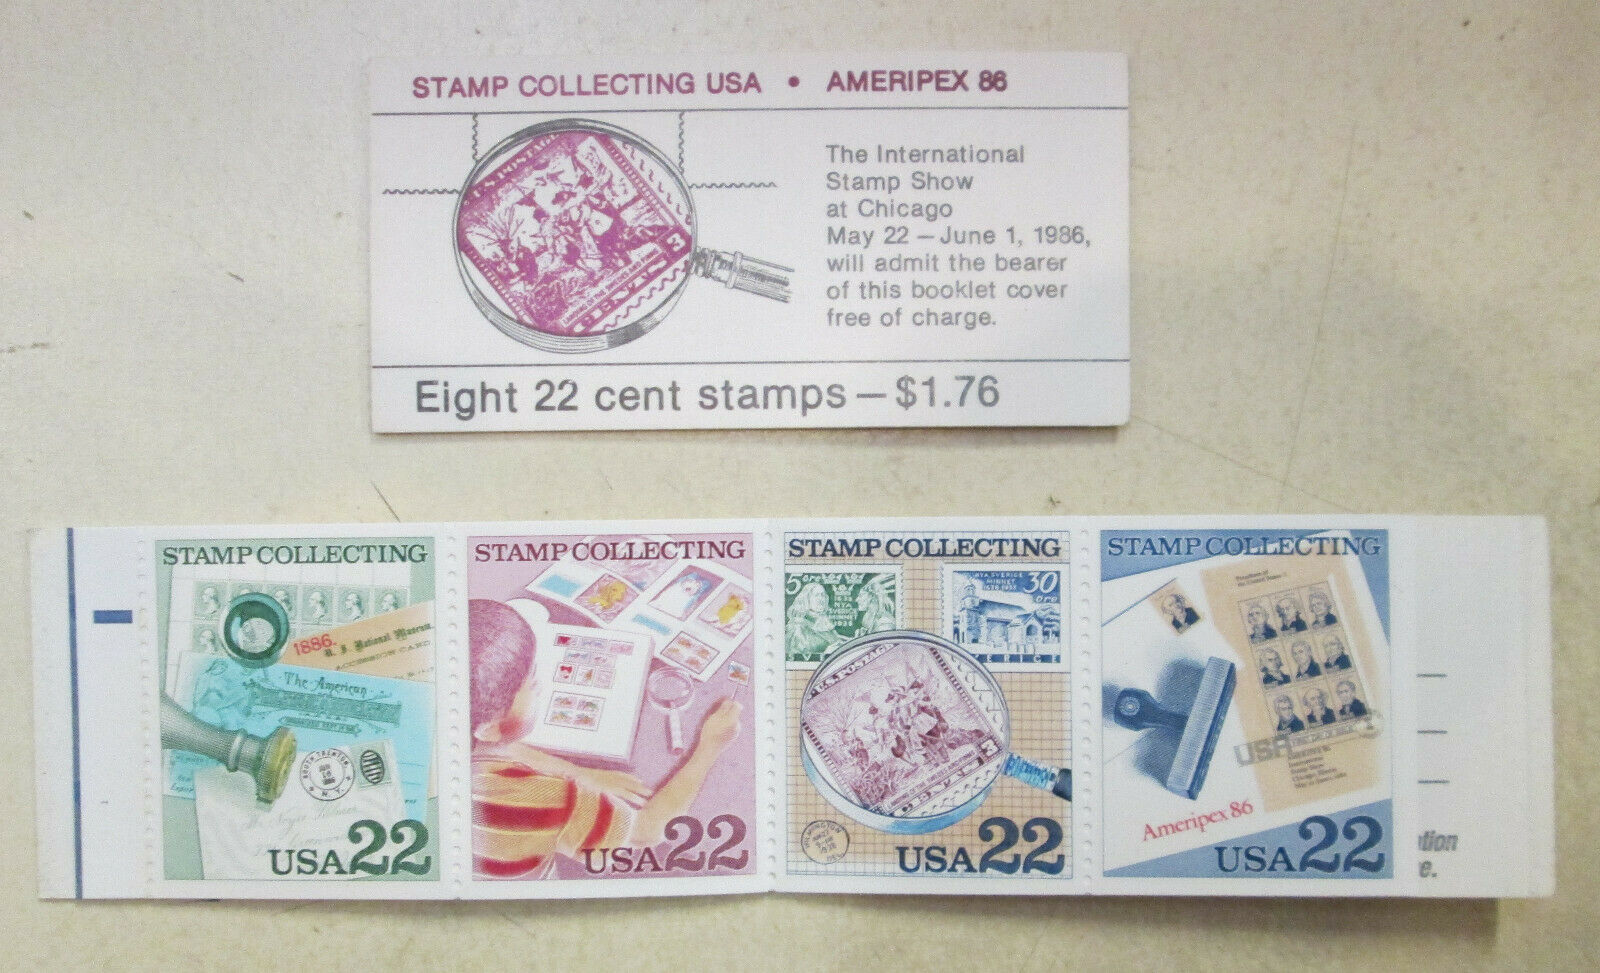 Ameripex 86 Stamp Collecting USA Eight 22 Cent Stamps. - $3.00